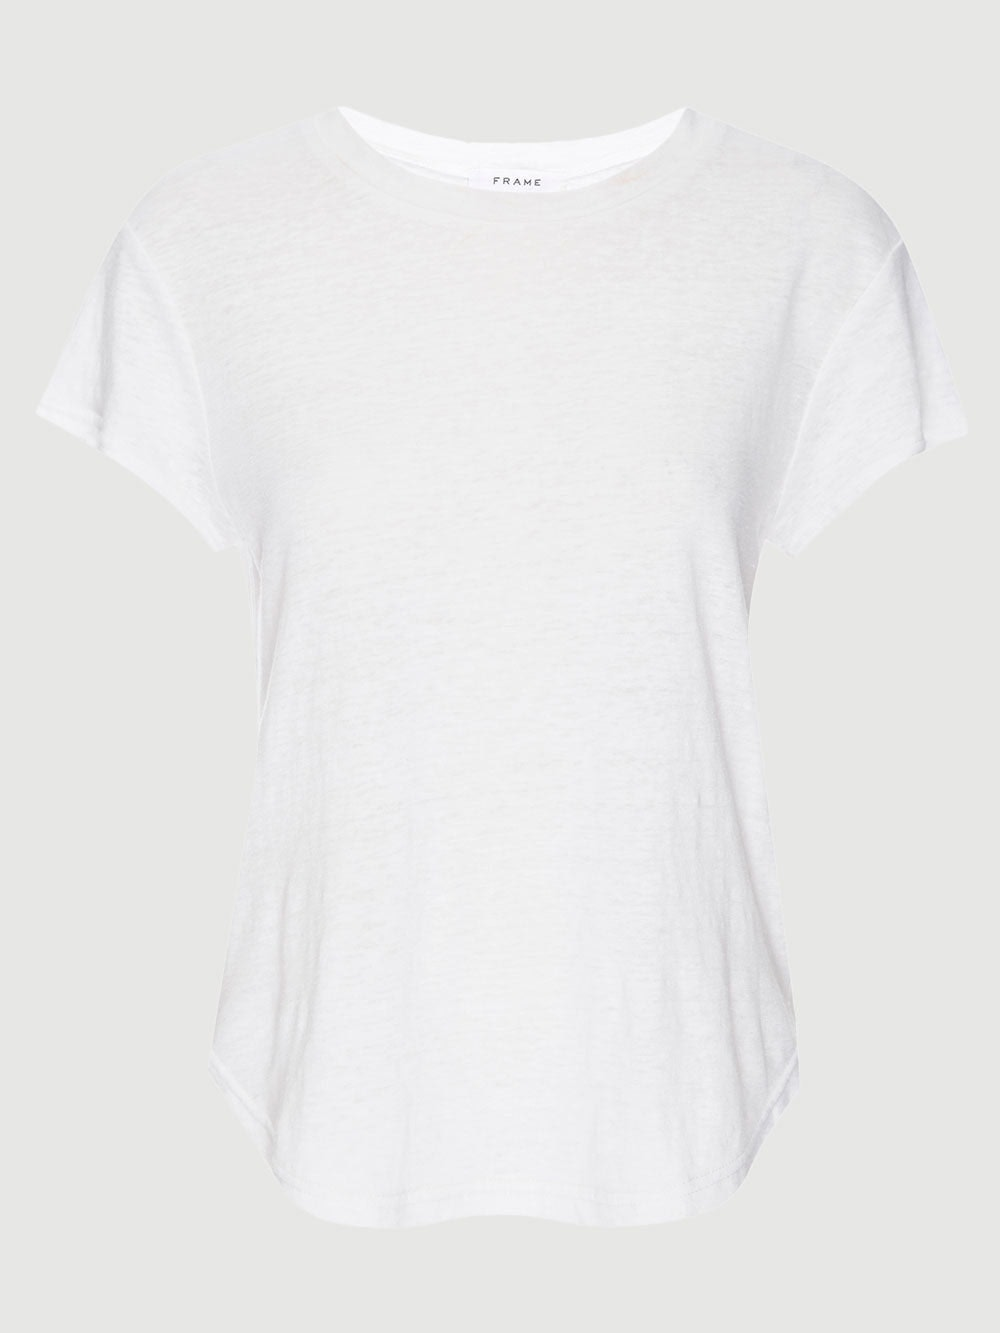 tee Front view 2